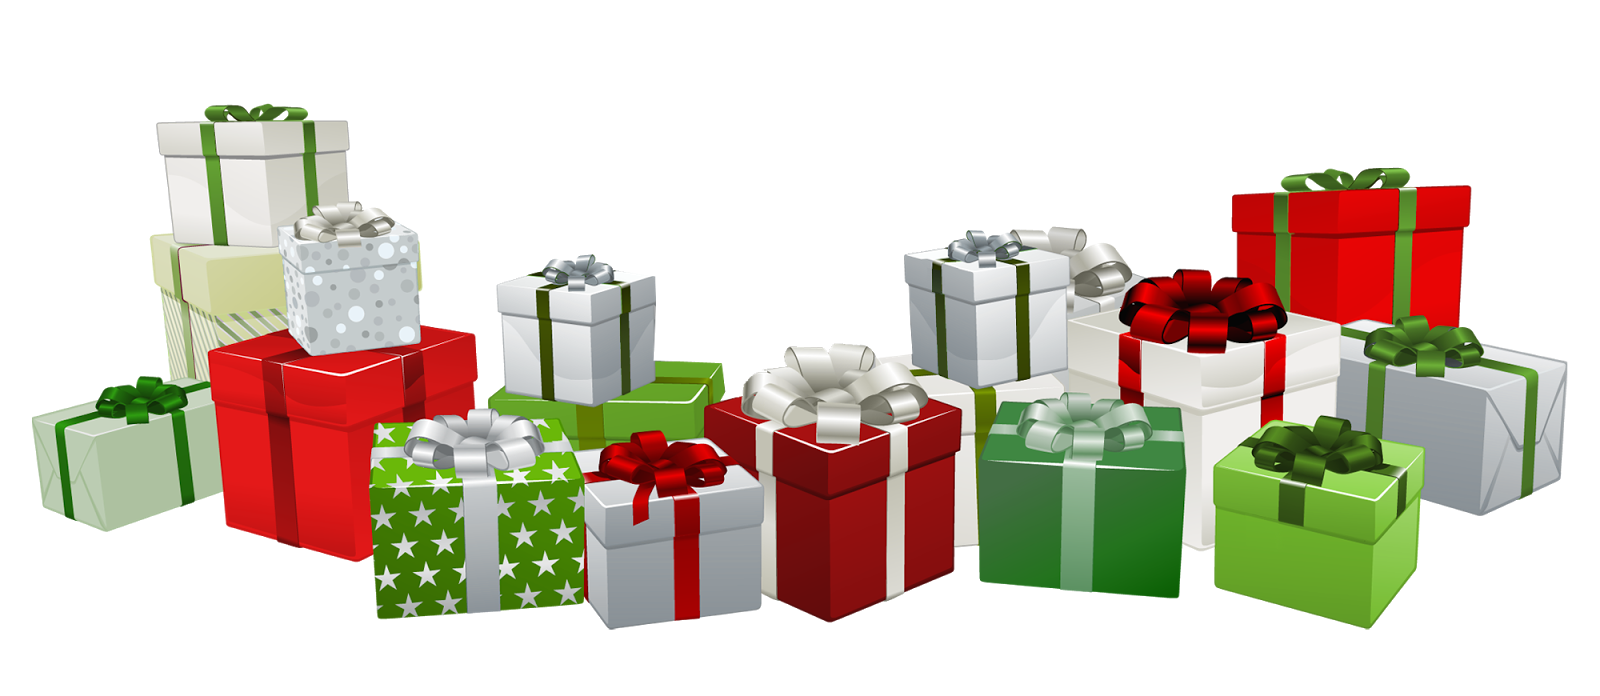 Free images download christmas. Clipart png gift